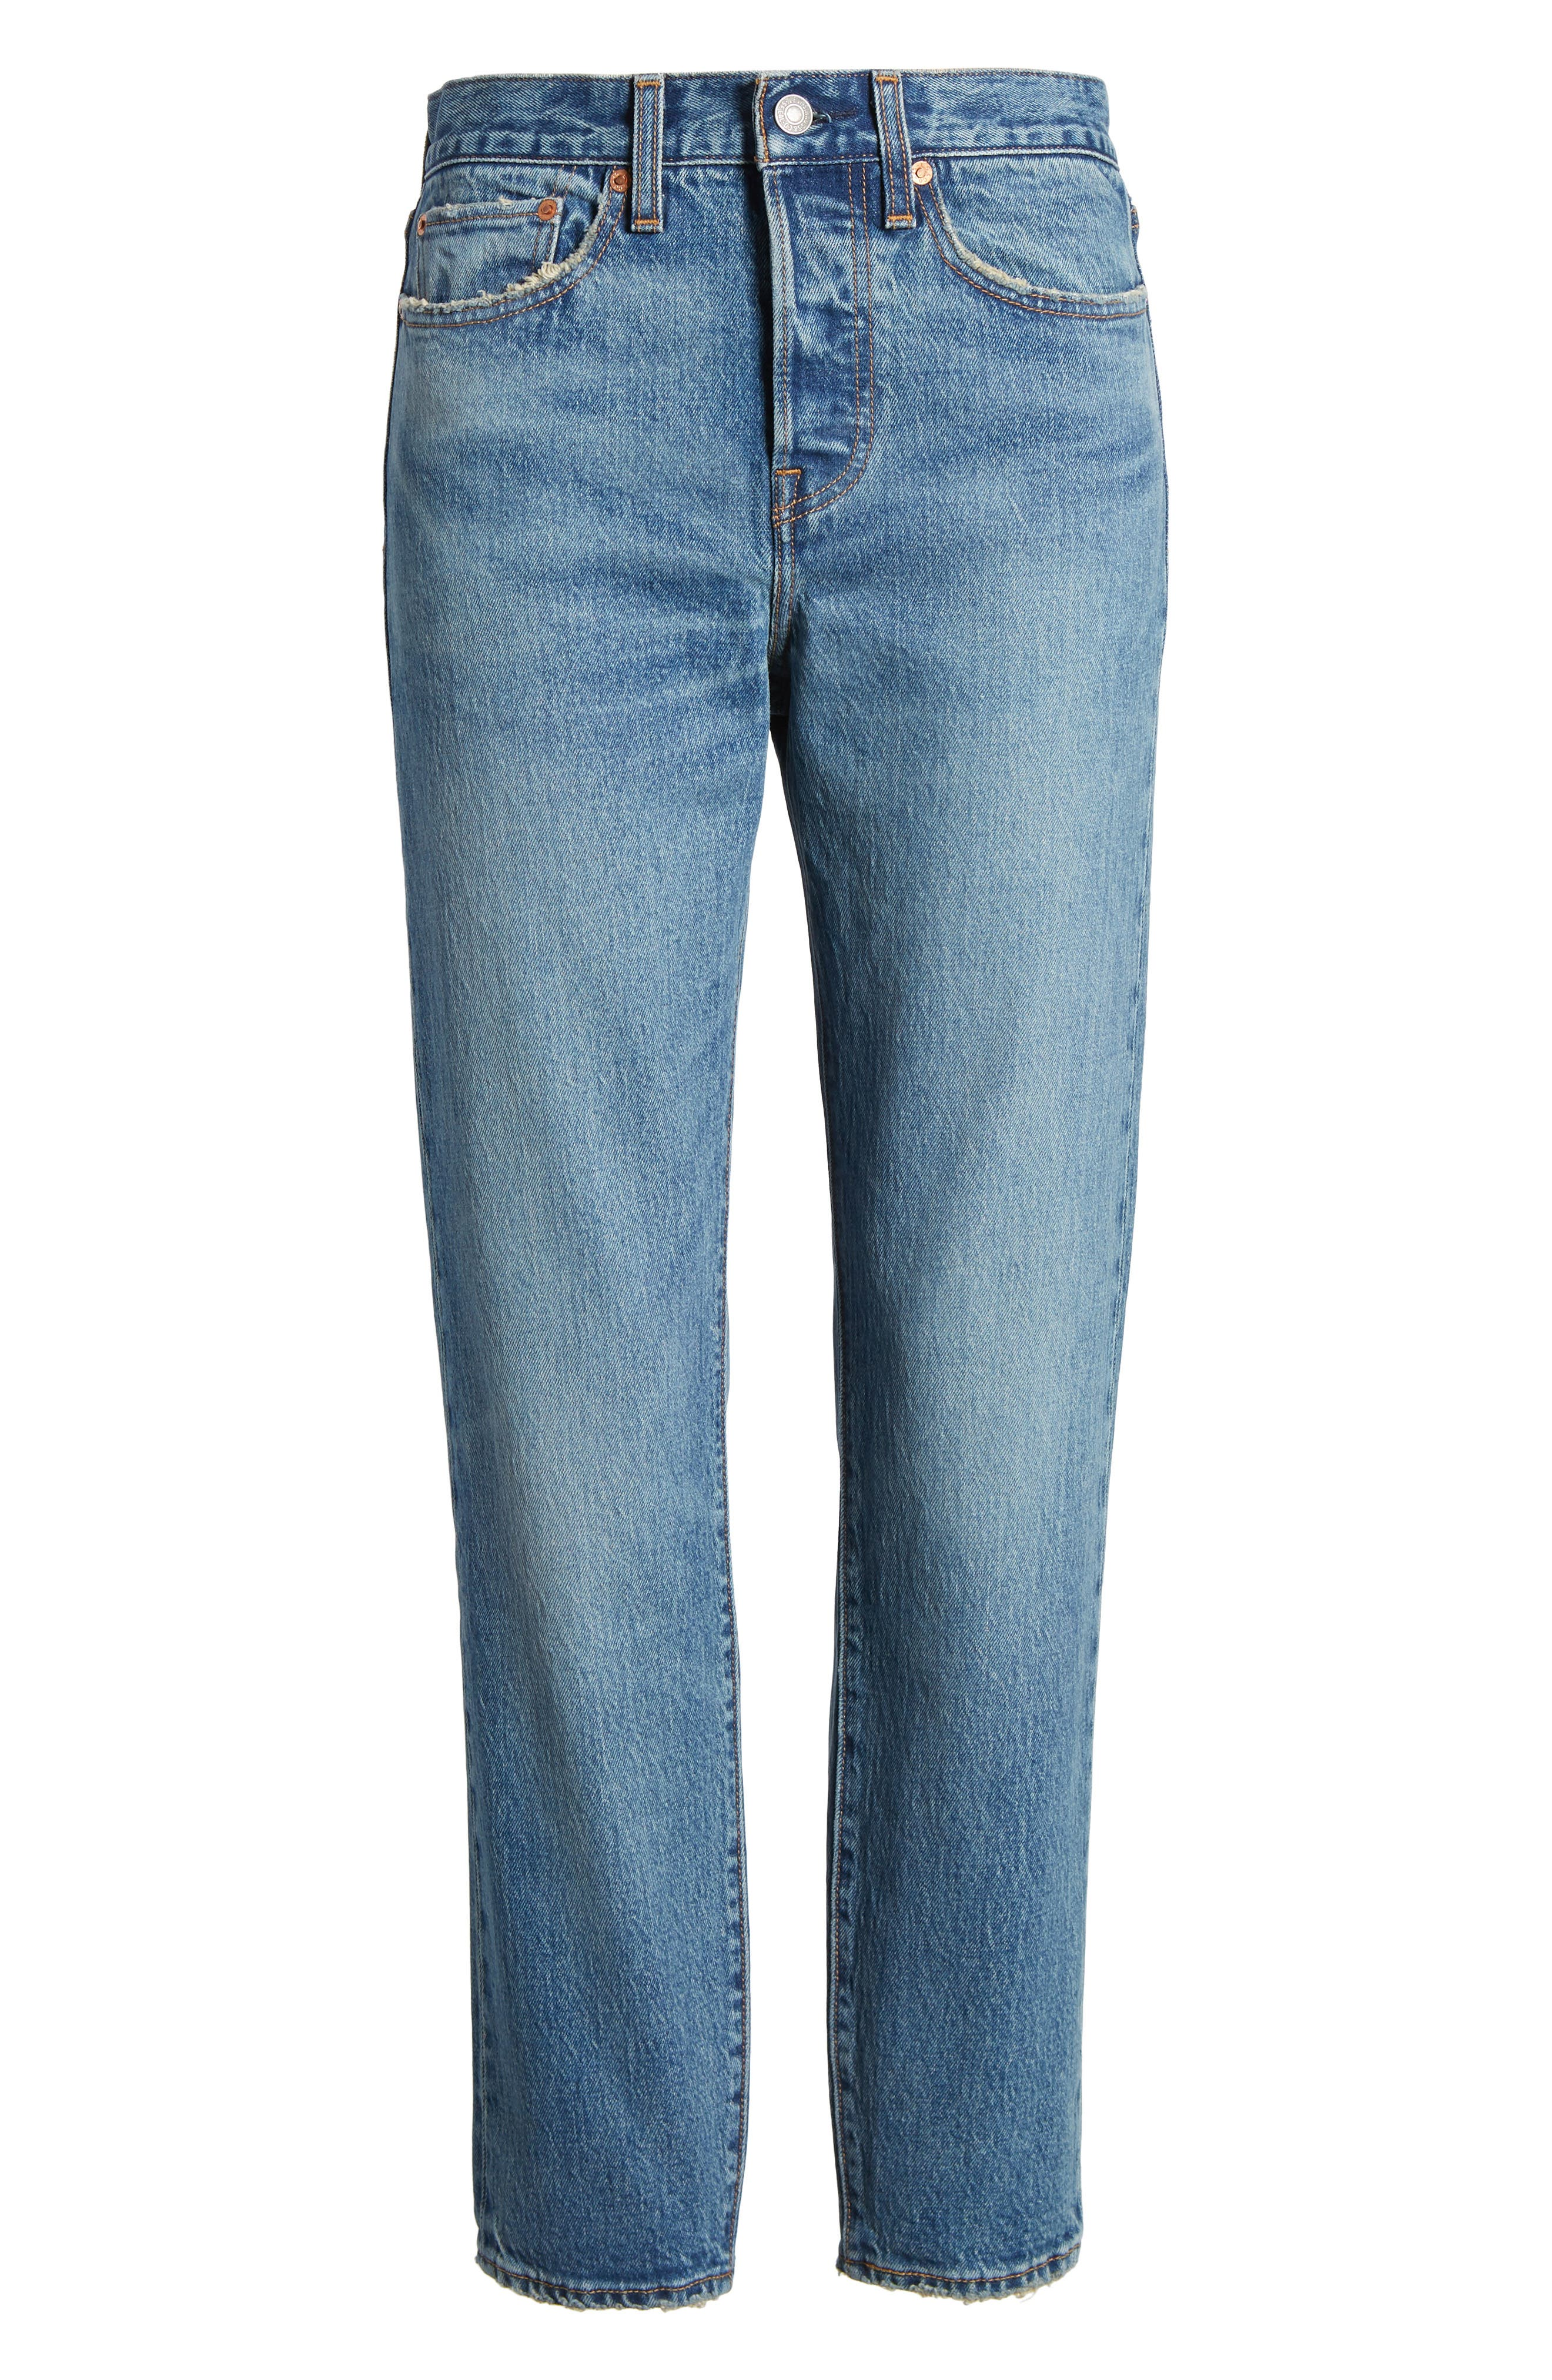 LEVI'S<SUP>®</SUP>, Wedgie Icon Fit High Waist Ankle Jeans, Alternate thumbnail 7, color, THESE DREAMS